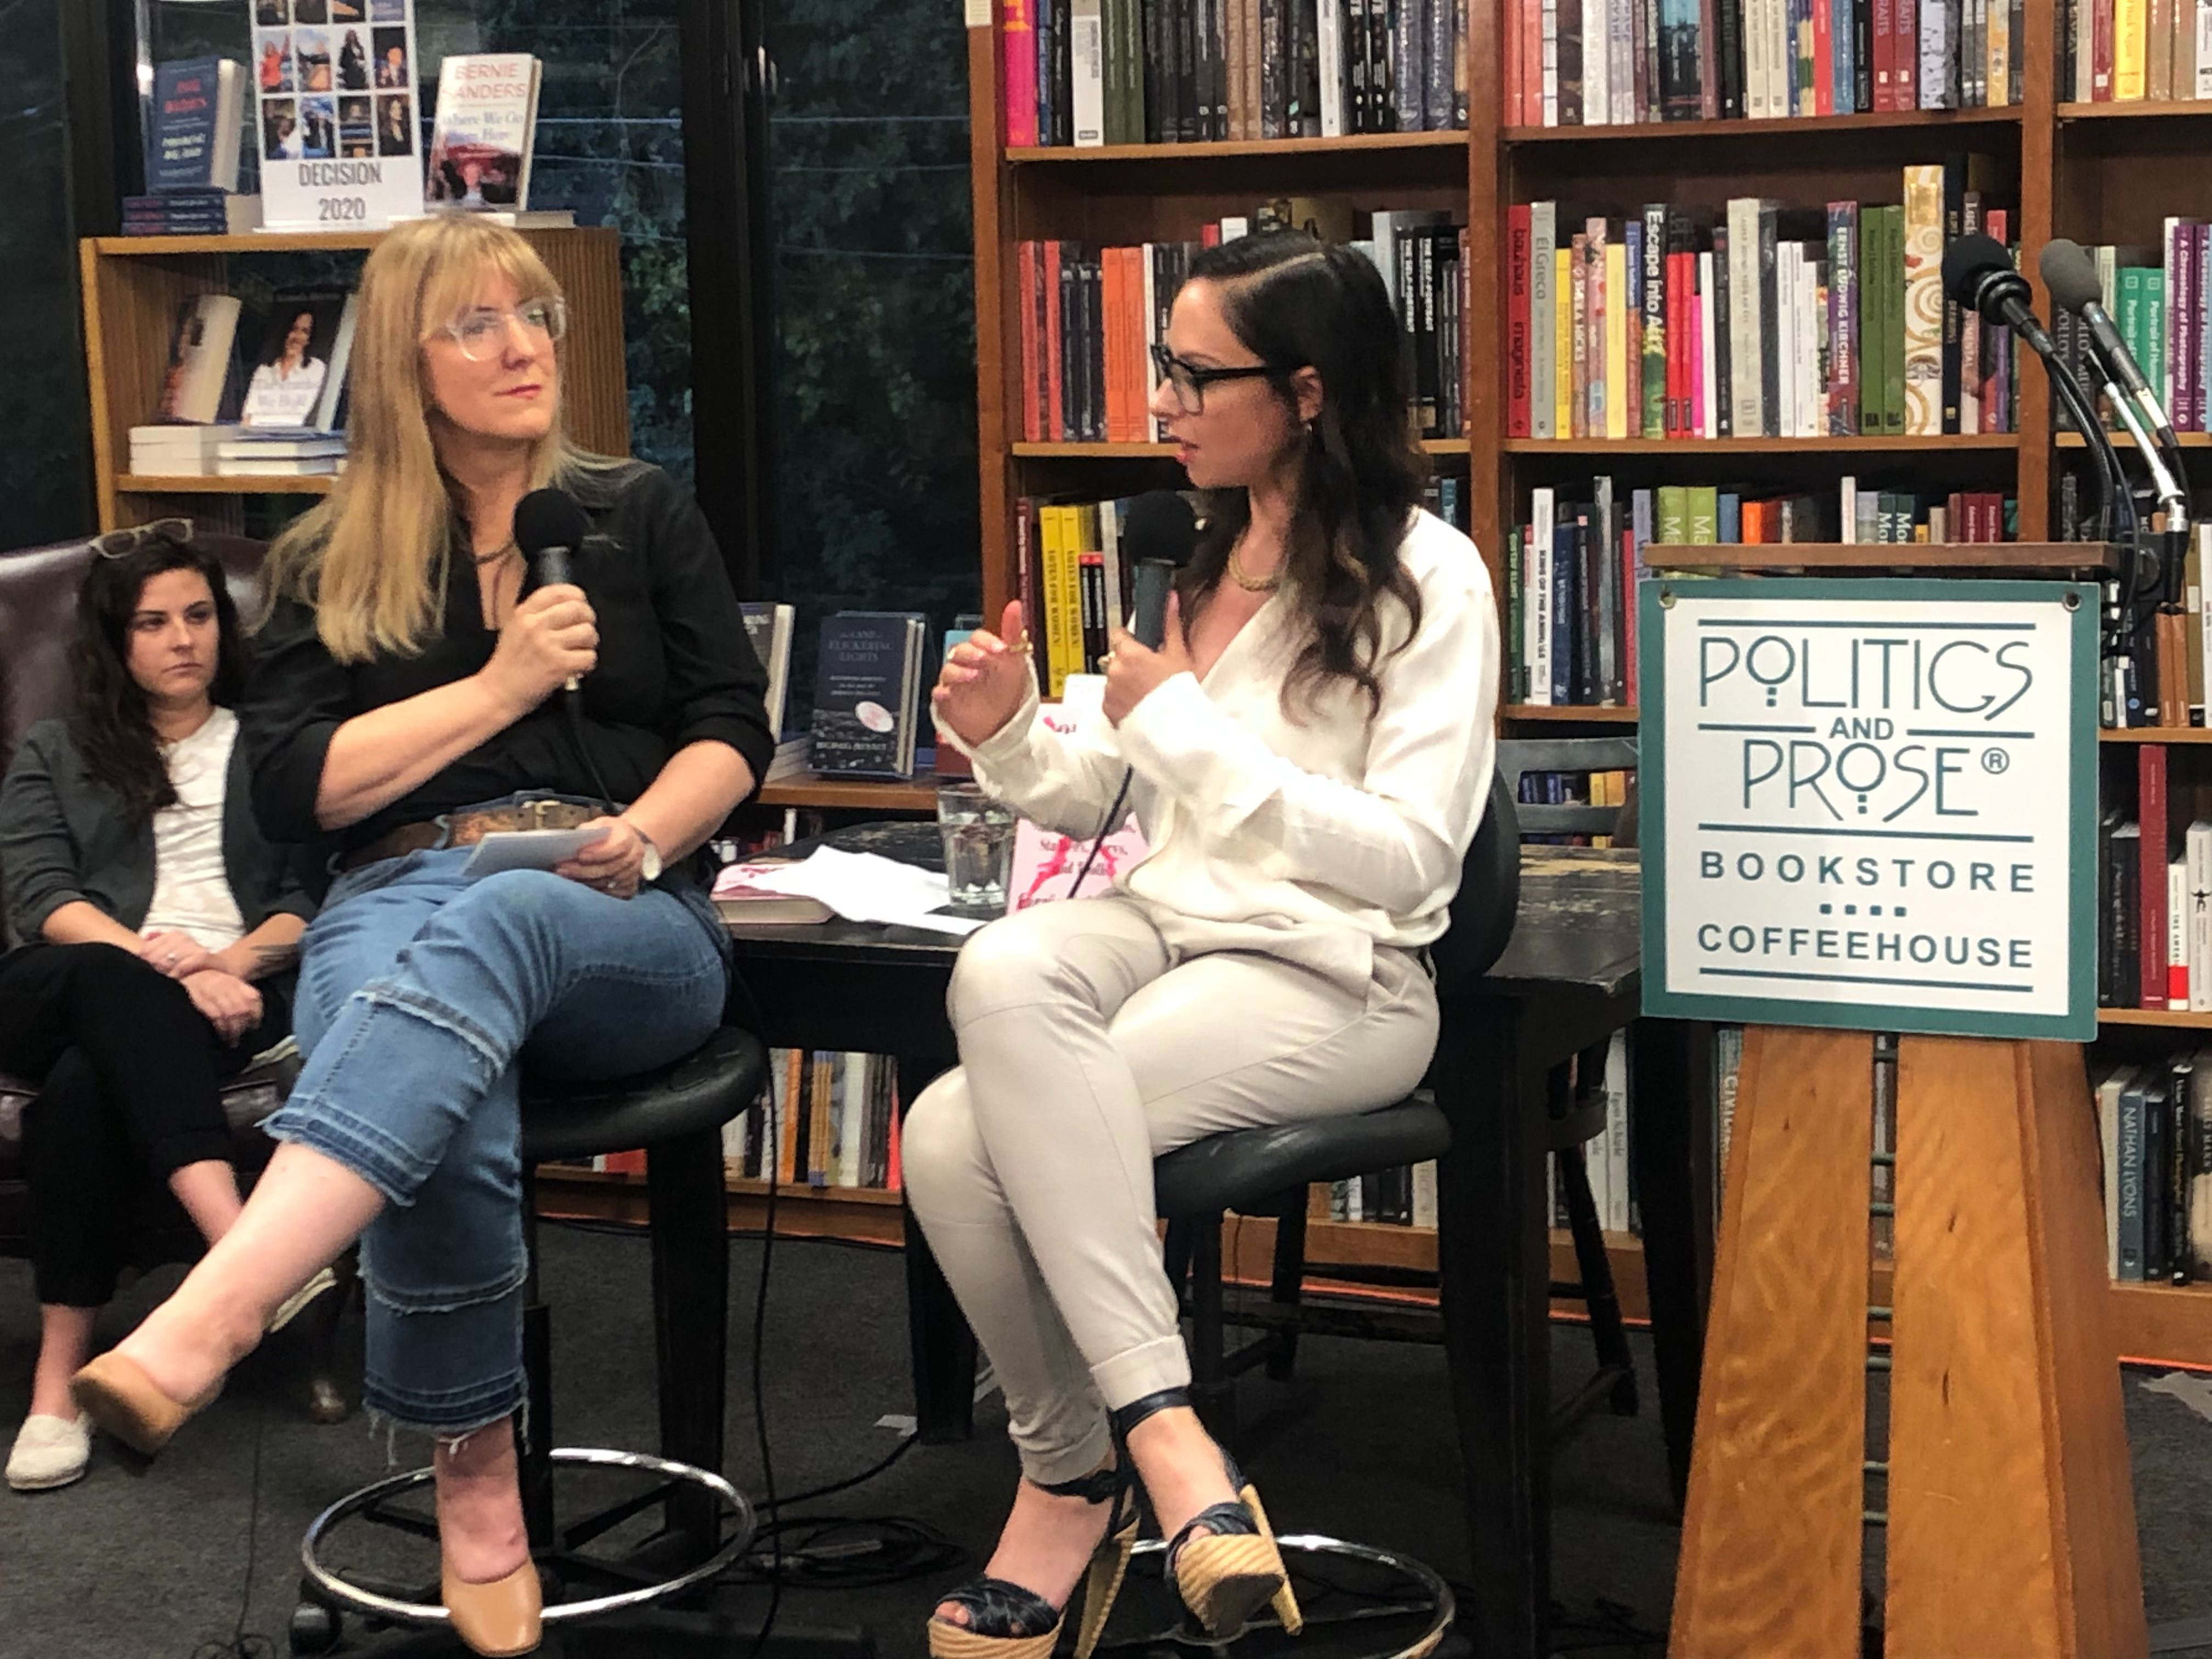 A Conversation With Carrie Goldberg